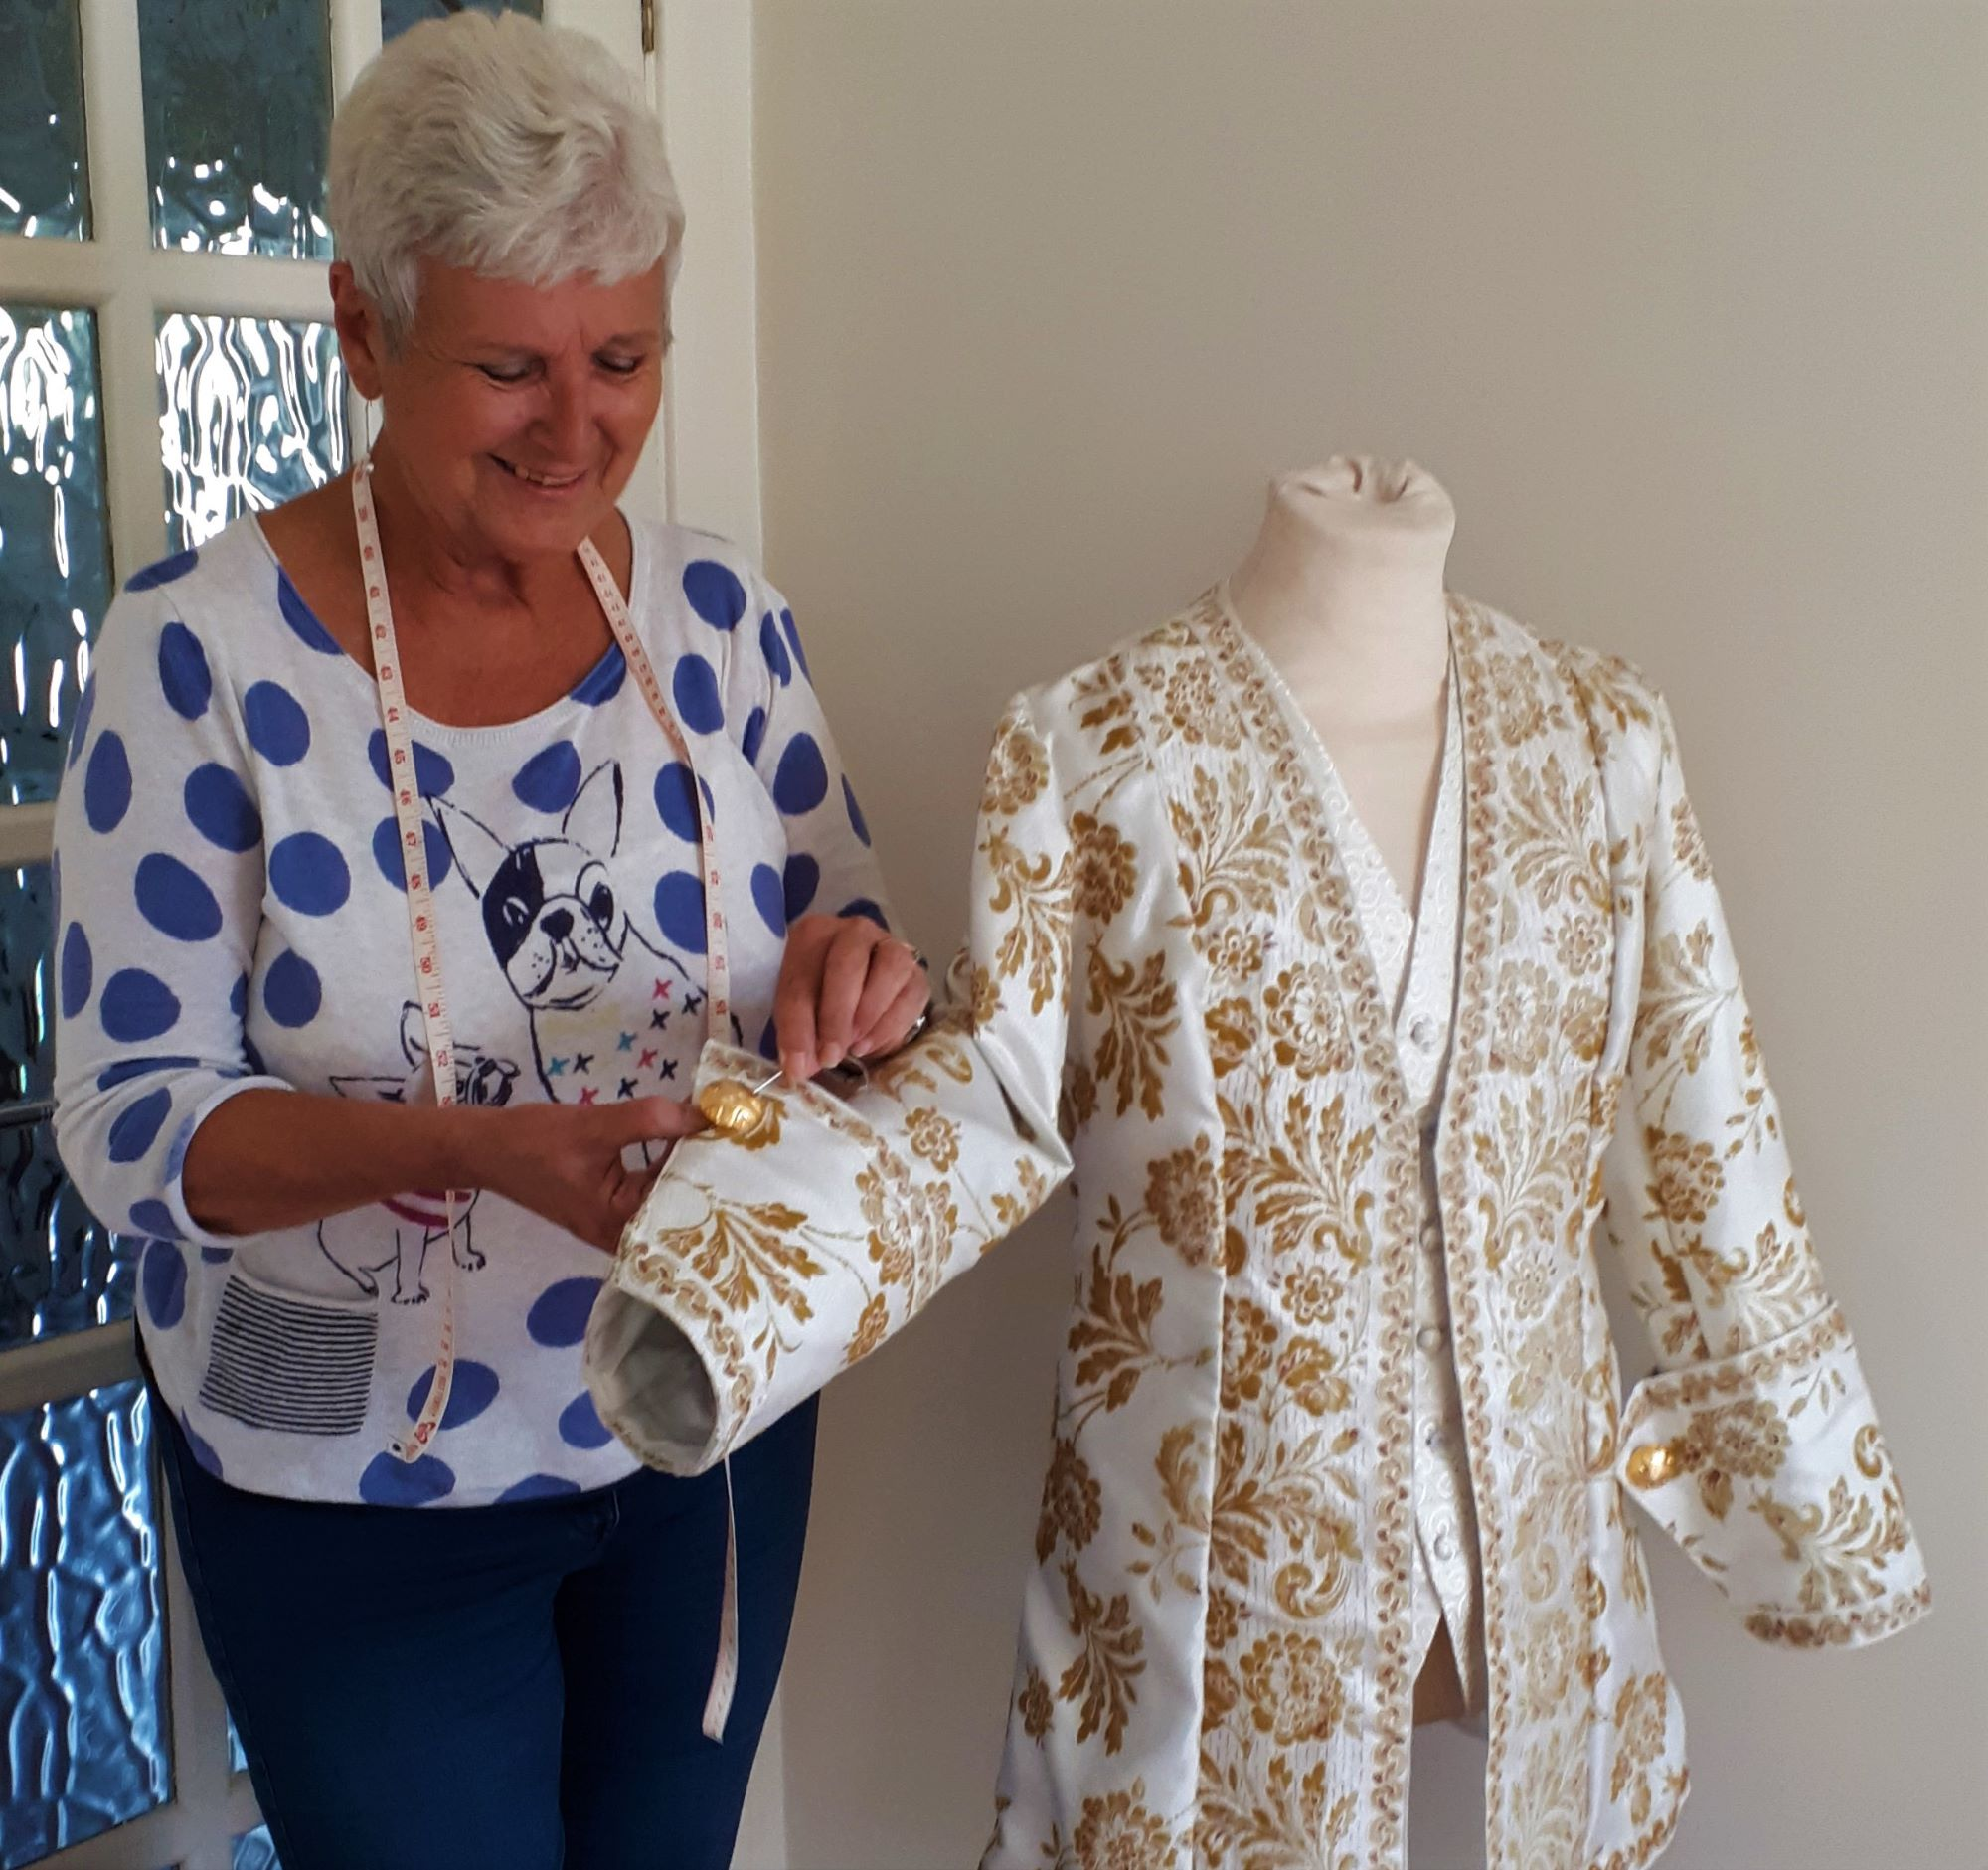 Marilyn secures her last stitch in a jacket   she made from recycled fabric, trimmings and buttons.